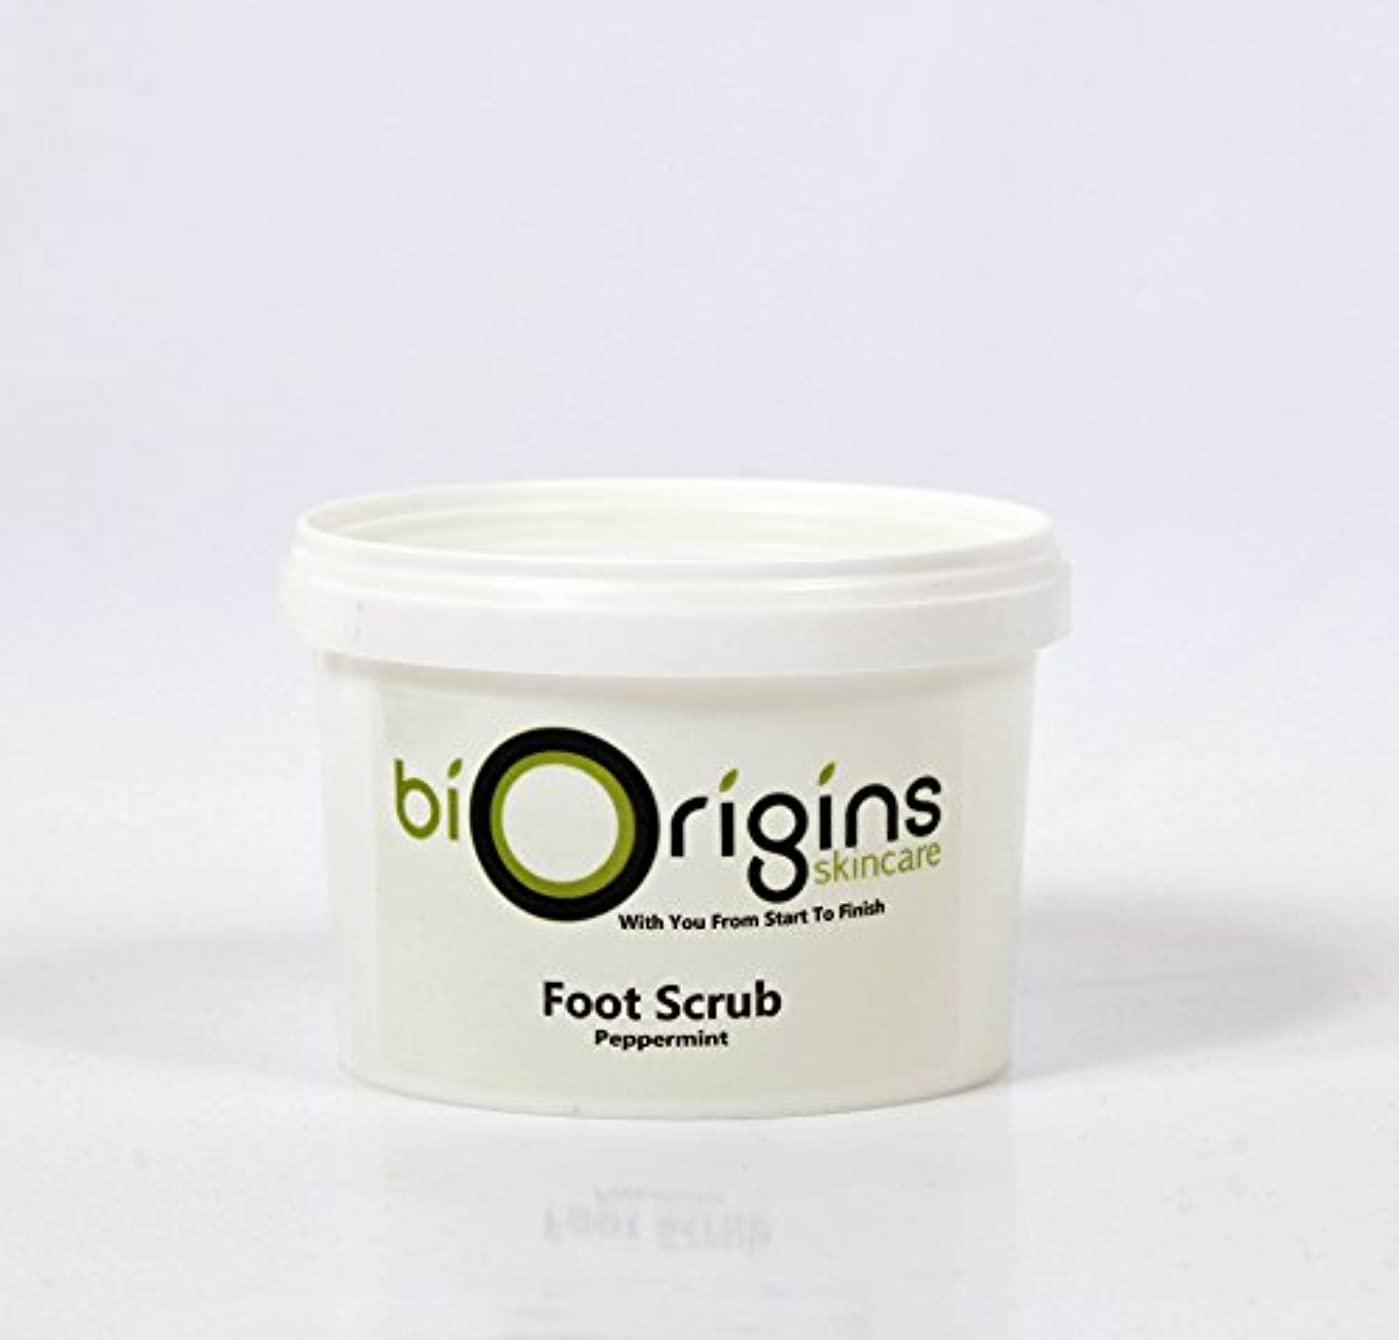 訪問想像力修正するFoot Scrub Peppermint - Botanical Skincare Base - 500g